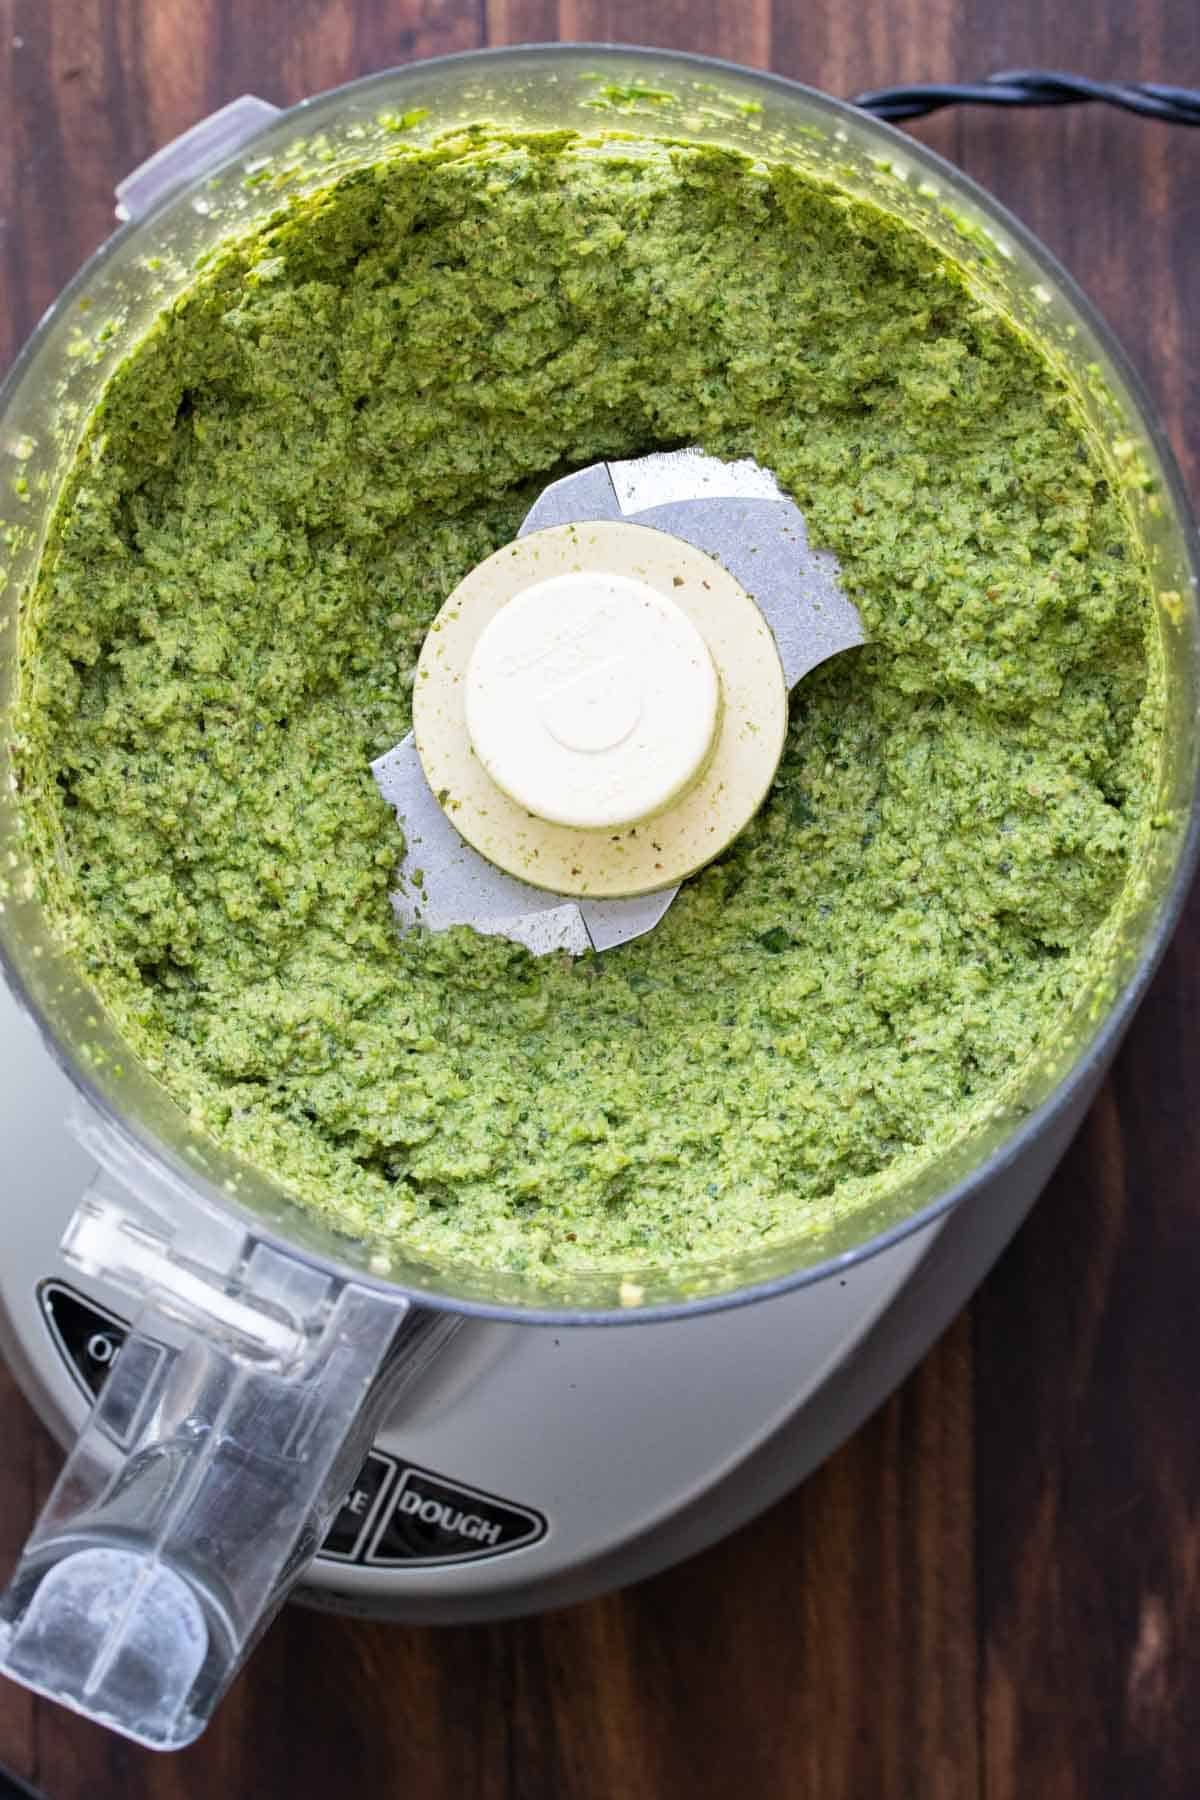 Top view of a food processor with pesto inside